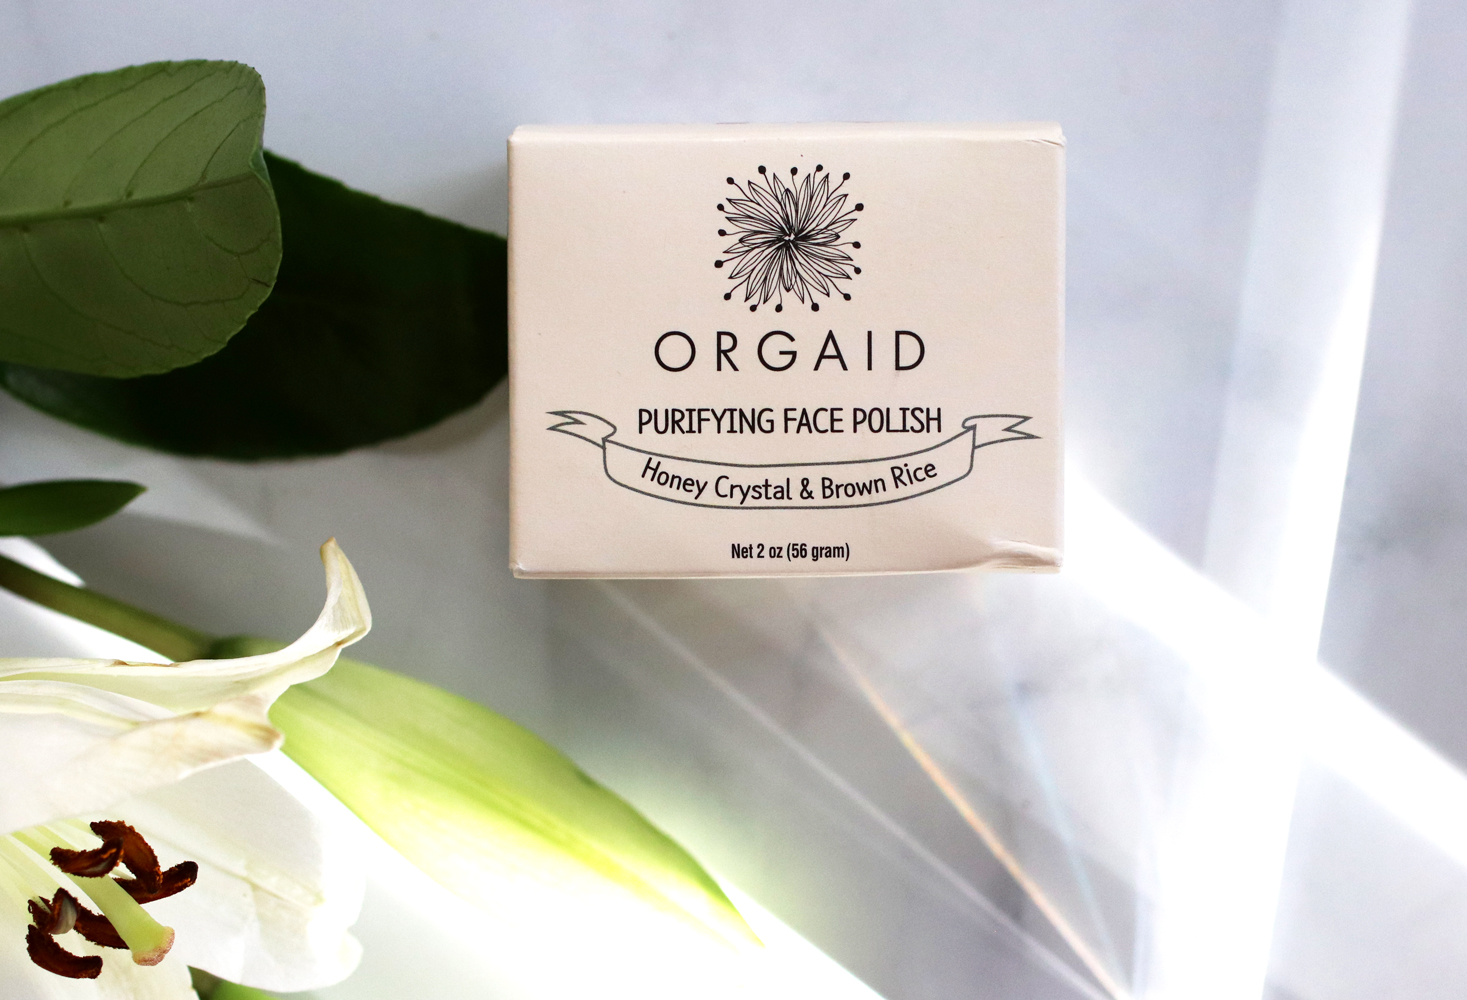 Clean beauty from Cynaglow - ORGAID Purifying Face Polish